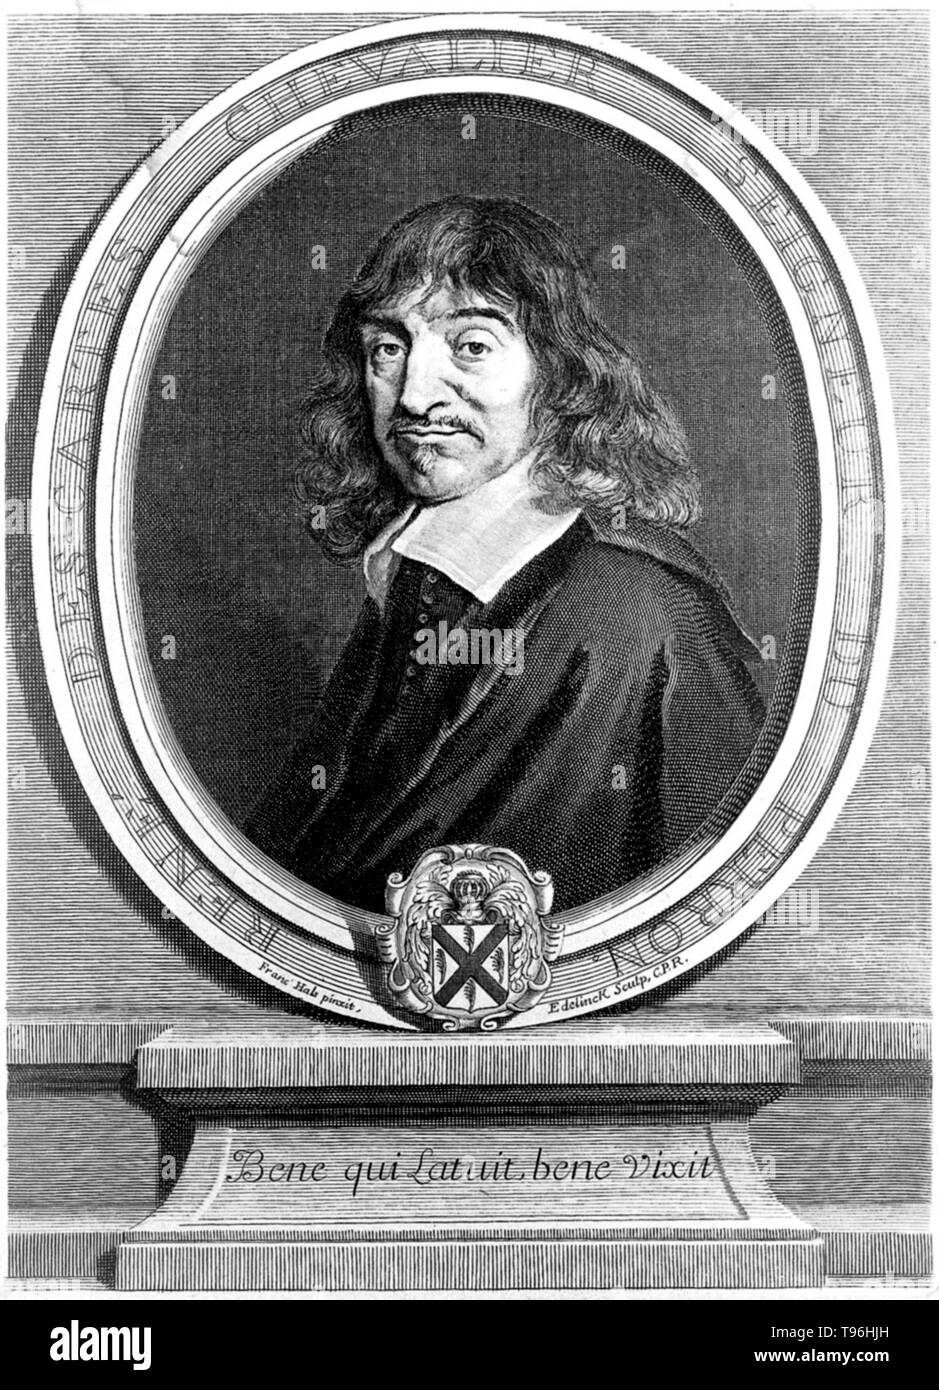 René Descartes (March 31, 1596 - February 11, 1650) was a French mathematician, philosopher and physiologist. Living on his modest inherited wealth, Descartes traveled, studied, wrote, and served as a soldier in Holland, Bohemia and Hungary. He created analytical geometry, which translates geometrical problems into algebraic form so that algebraic methods can be applied to their solution. Conversely he applied geometry to algebra. He propounded Cartesian dualism, stating that mind and matter are two distinct substances which can interact. He believed that god is the prime mover of matter, and  - Stock Image